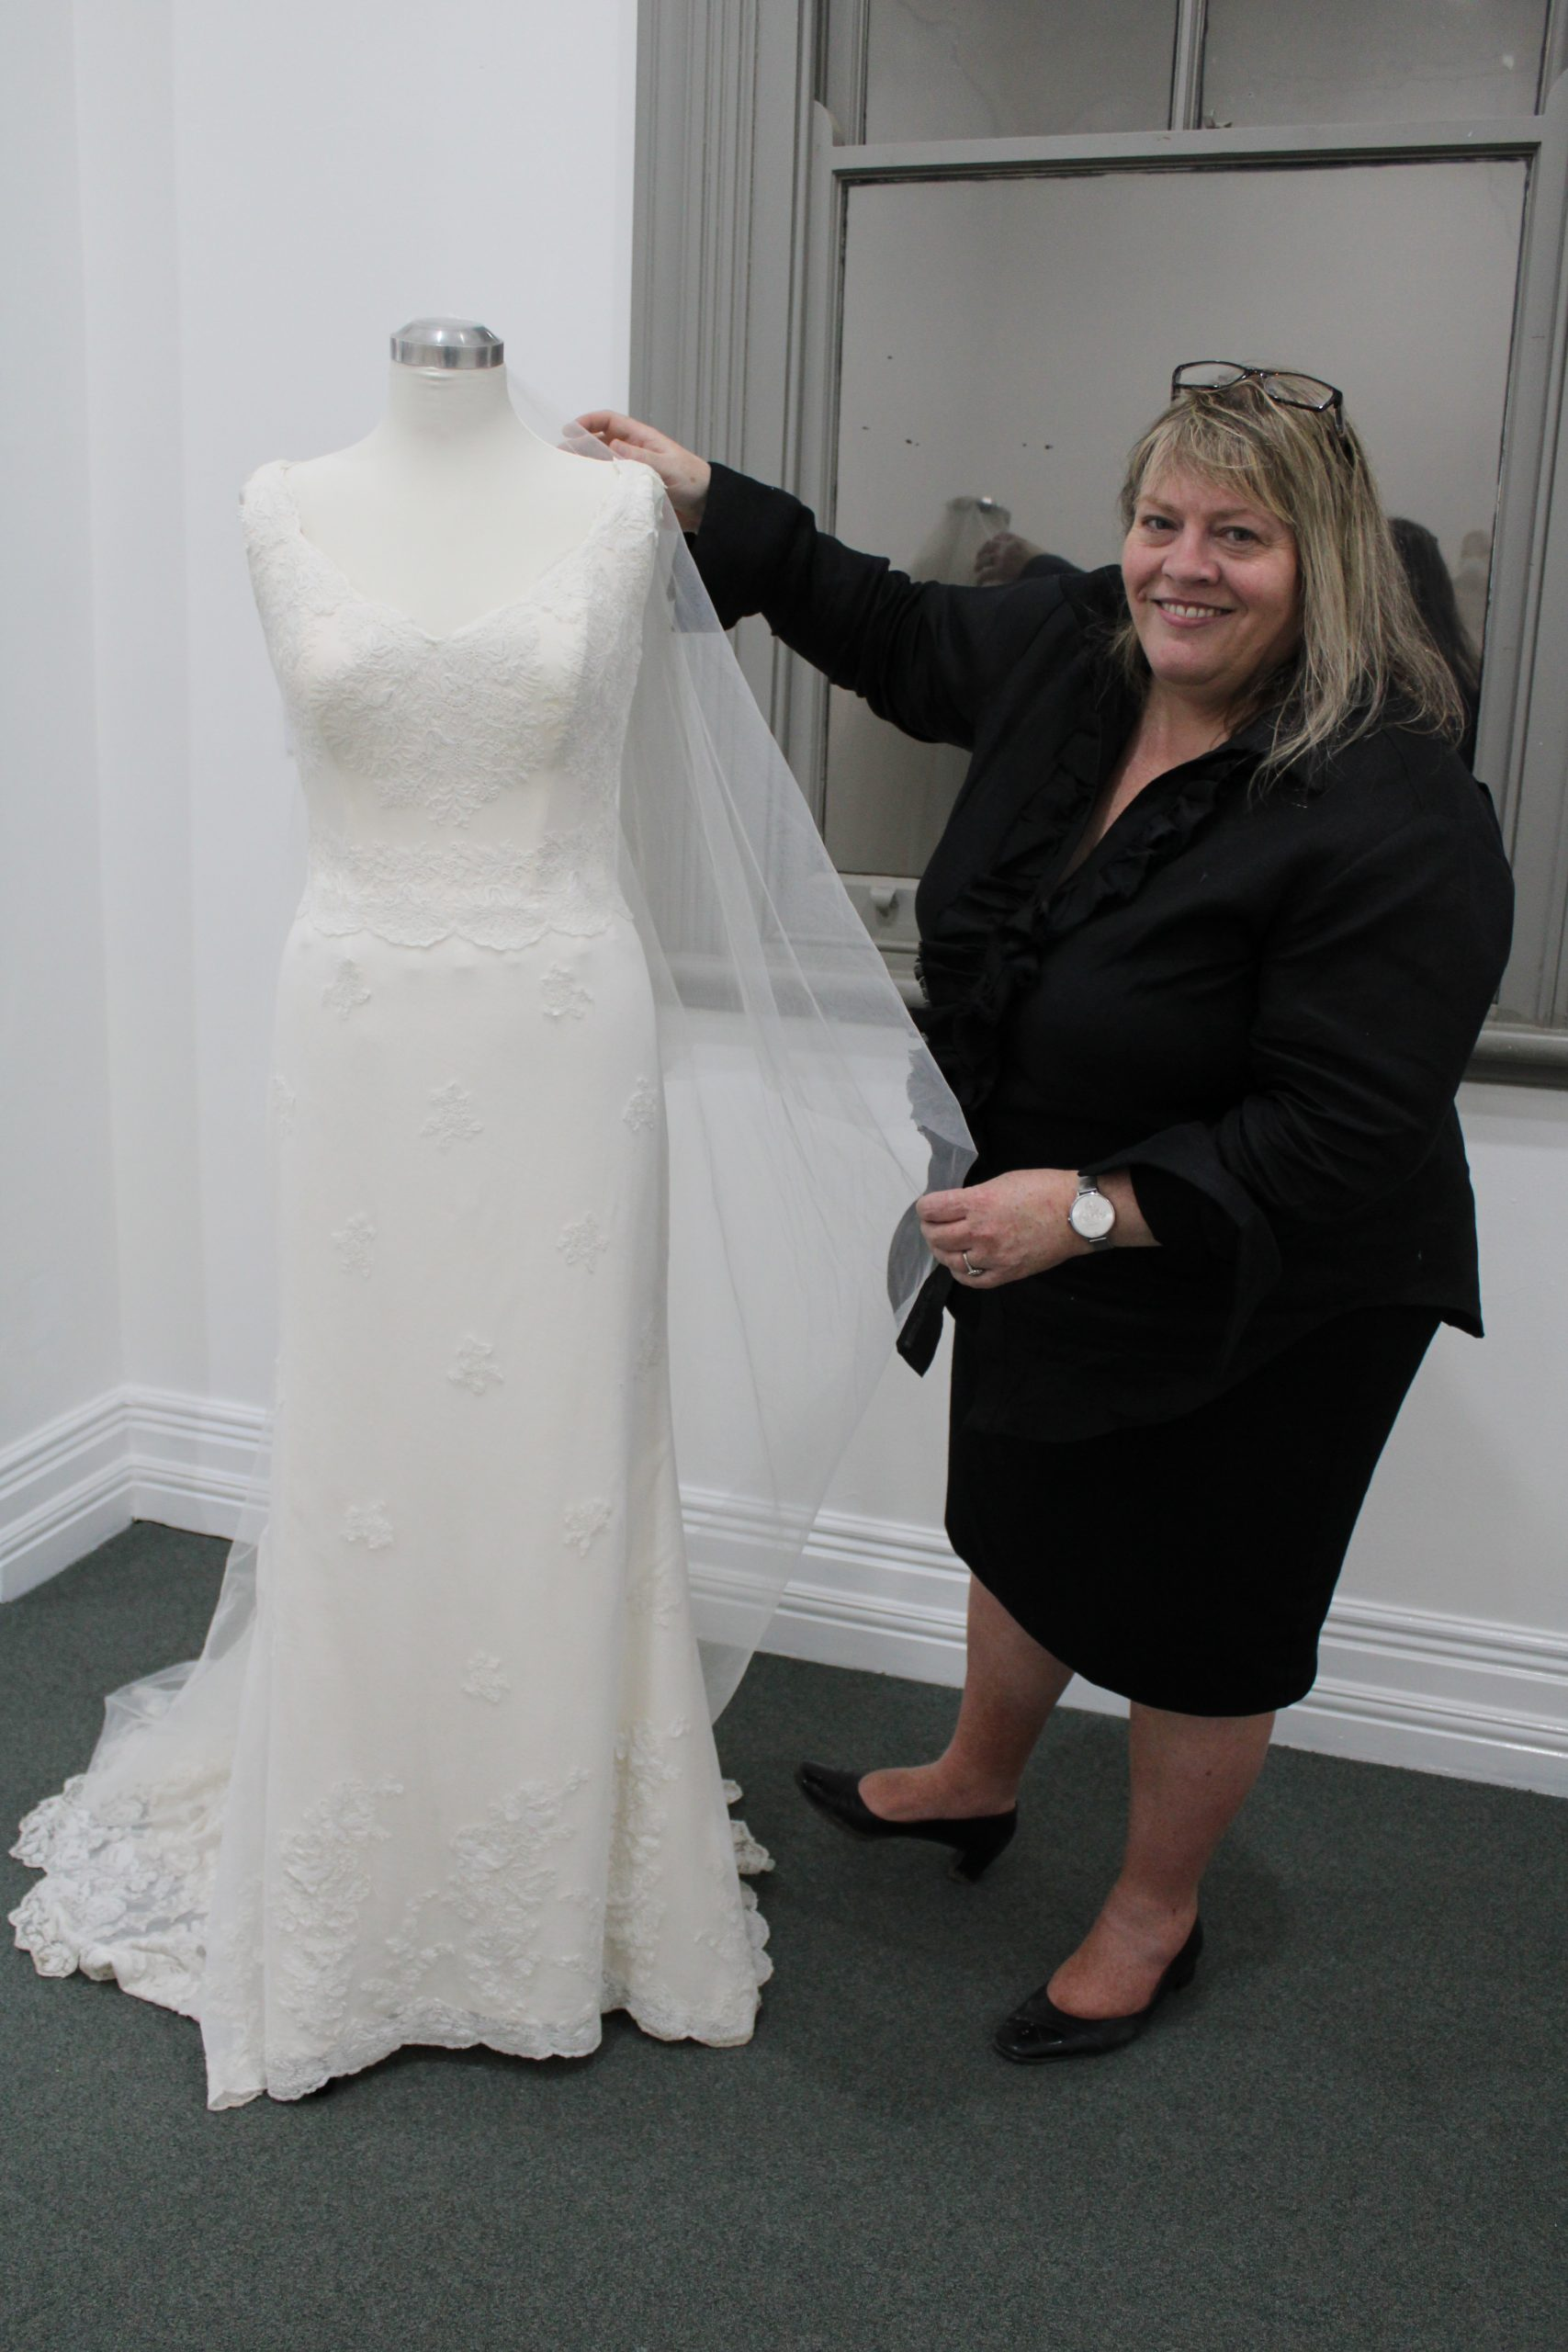 Spectacular wedding gown seamstress in spotlight   GALLERY   The ...